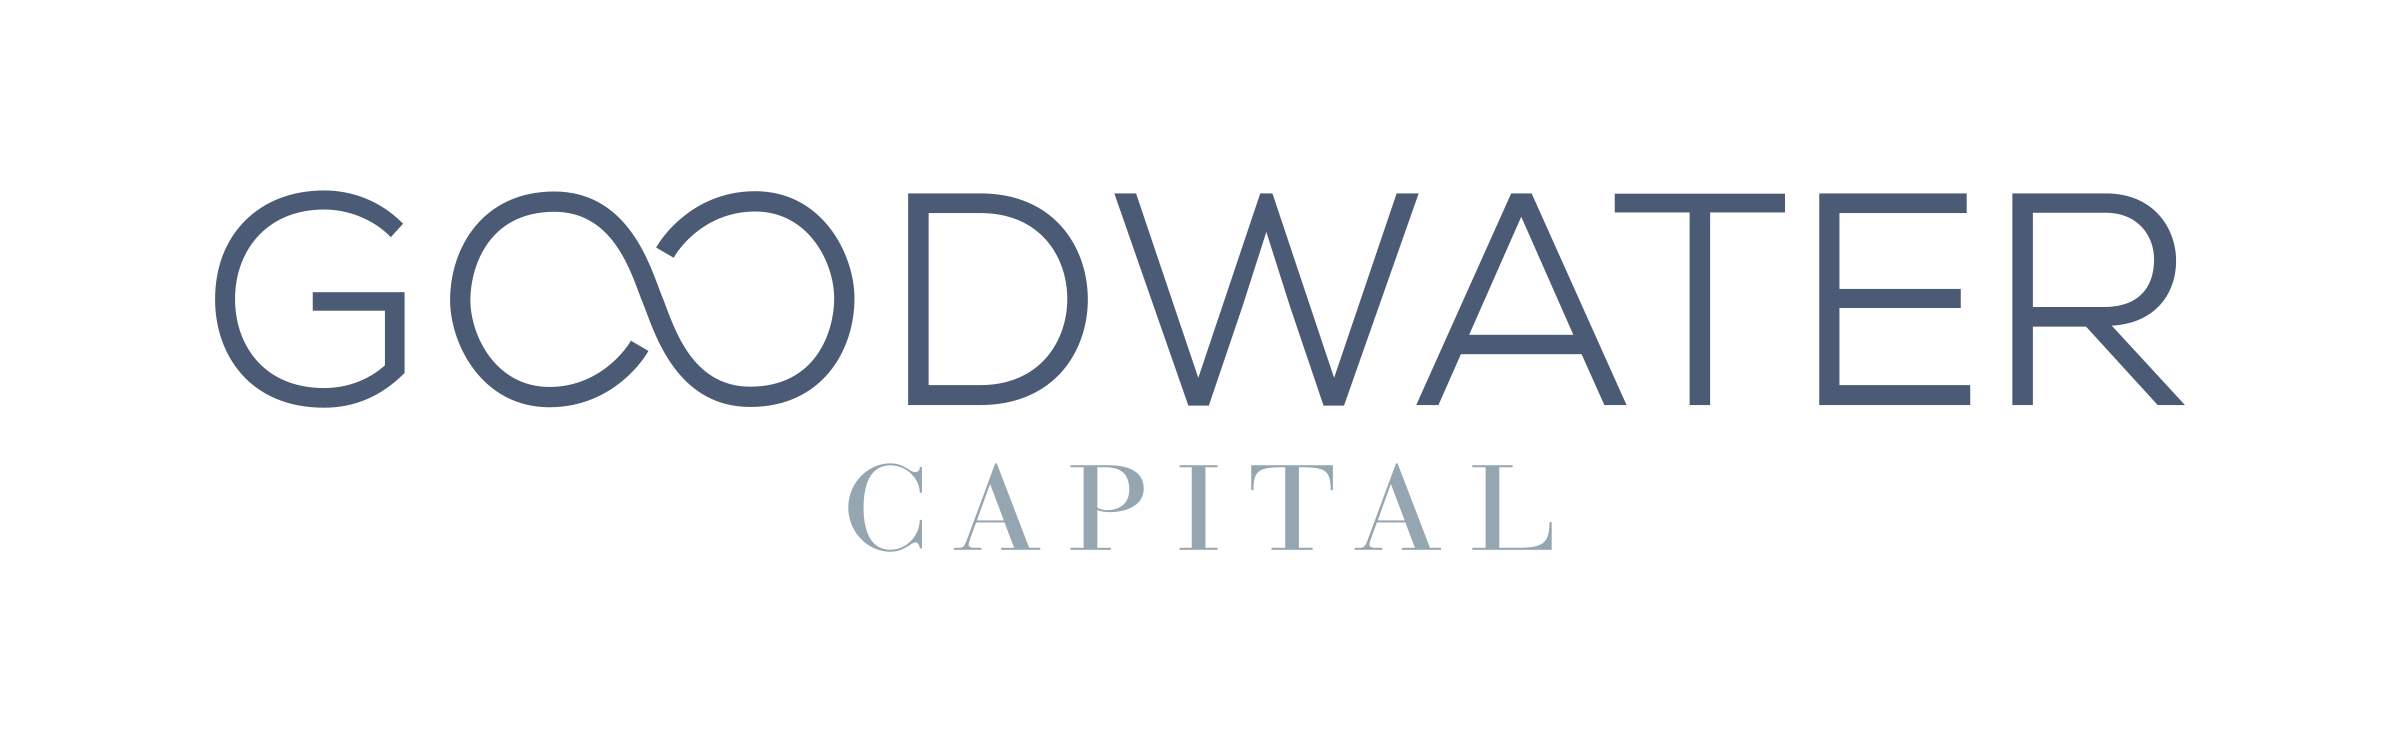 Goodwater Capital logo